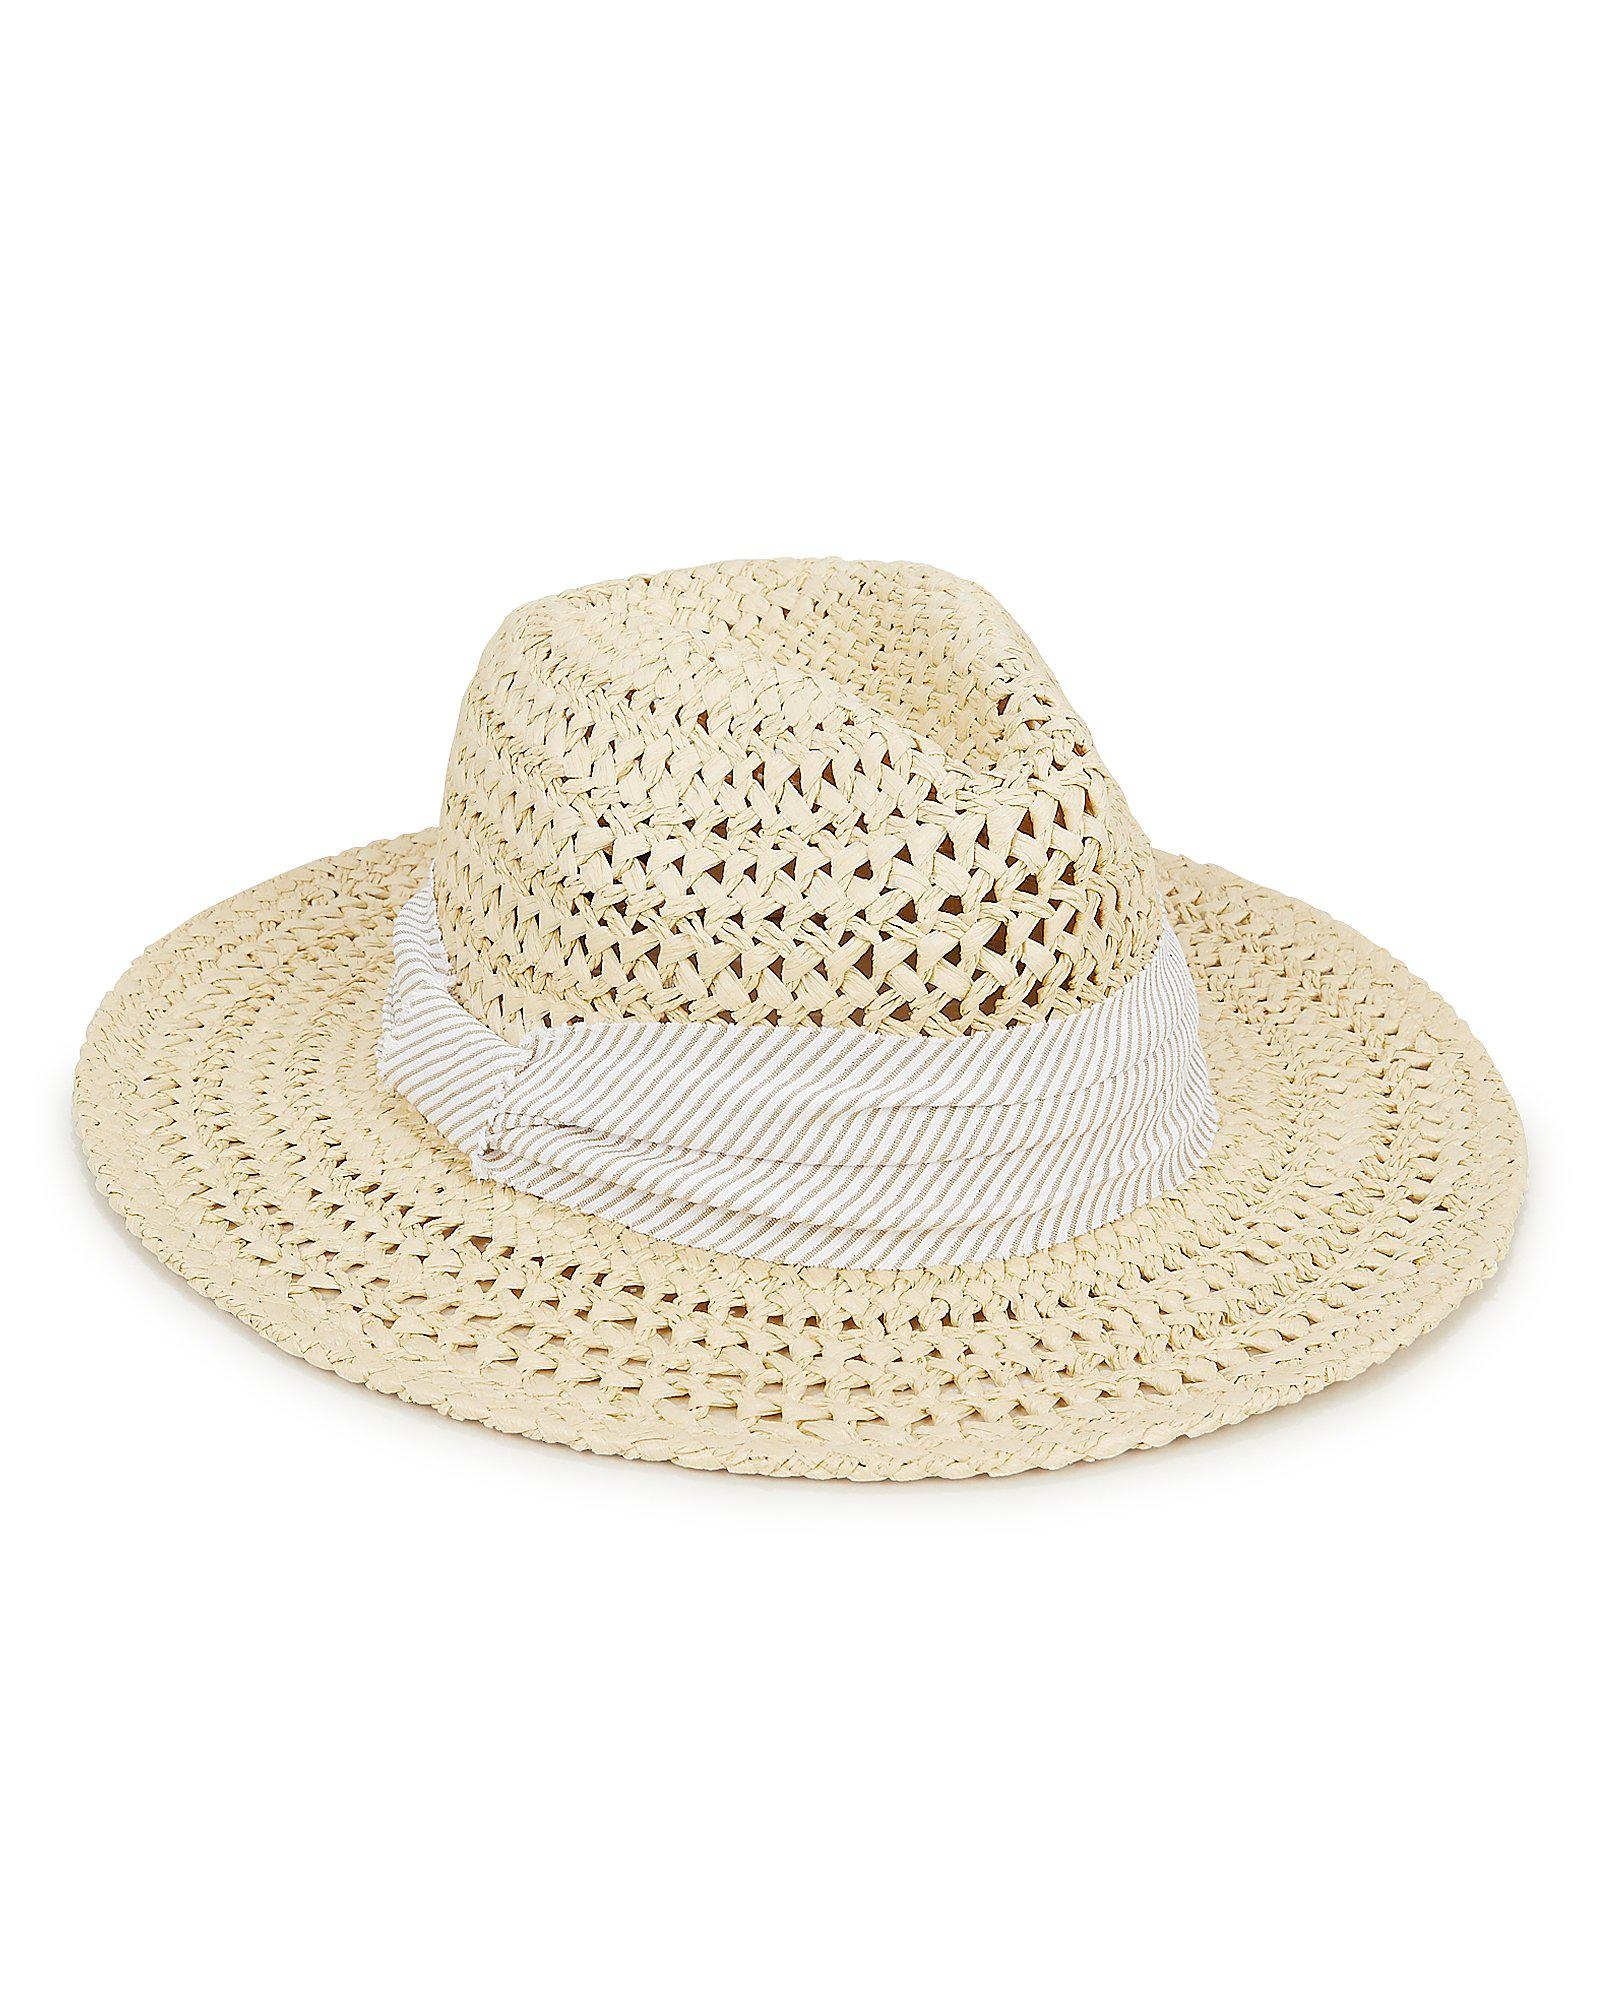 7dbb1ff8065 Lyst - Hat Attack Cane Beige Weave Rancher Hat in Natural